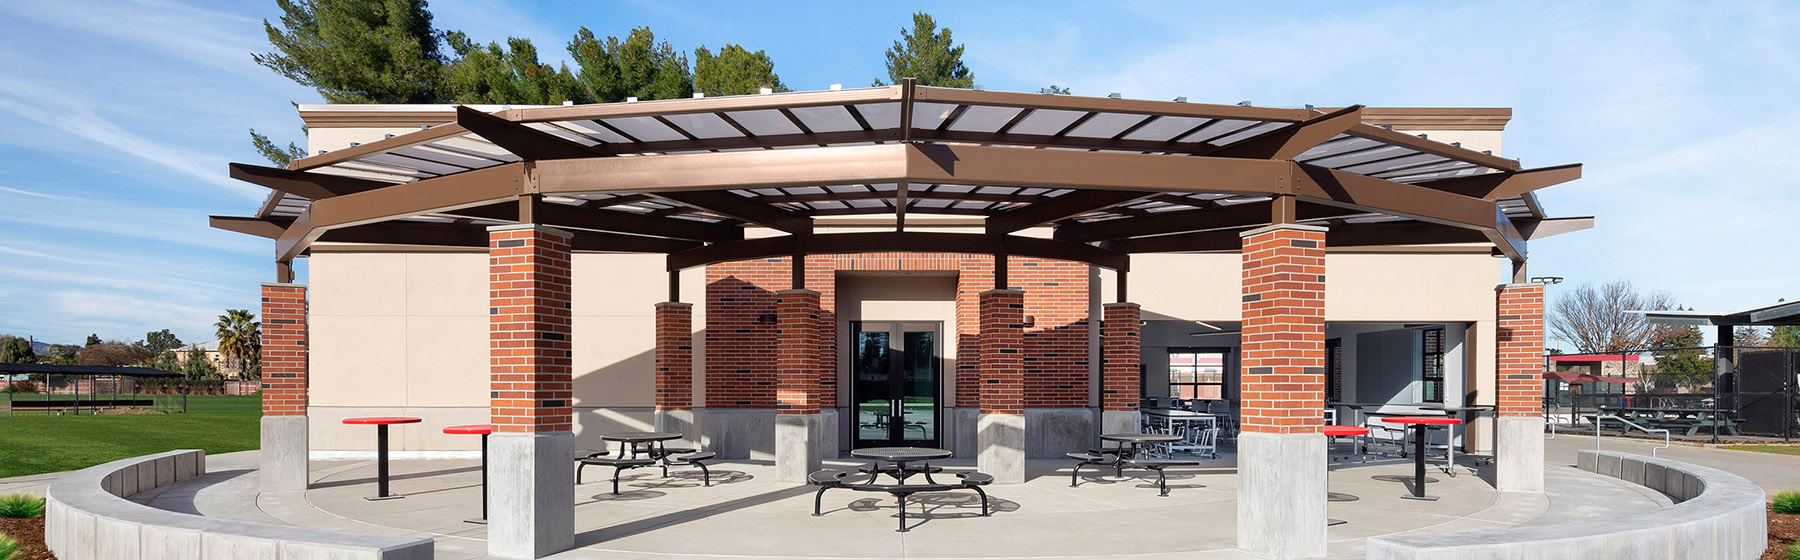 Student Union Completion at Winters High School